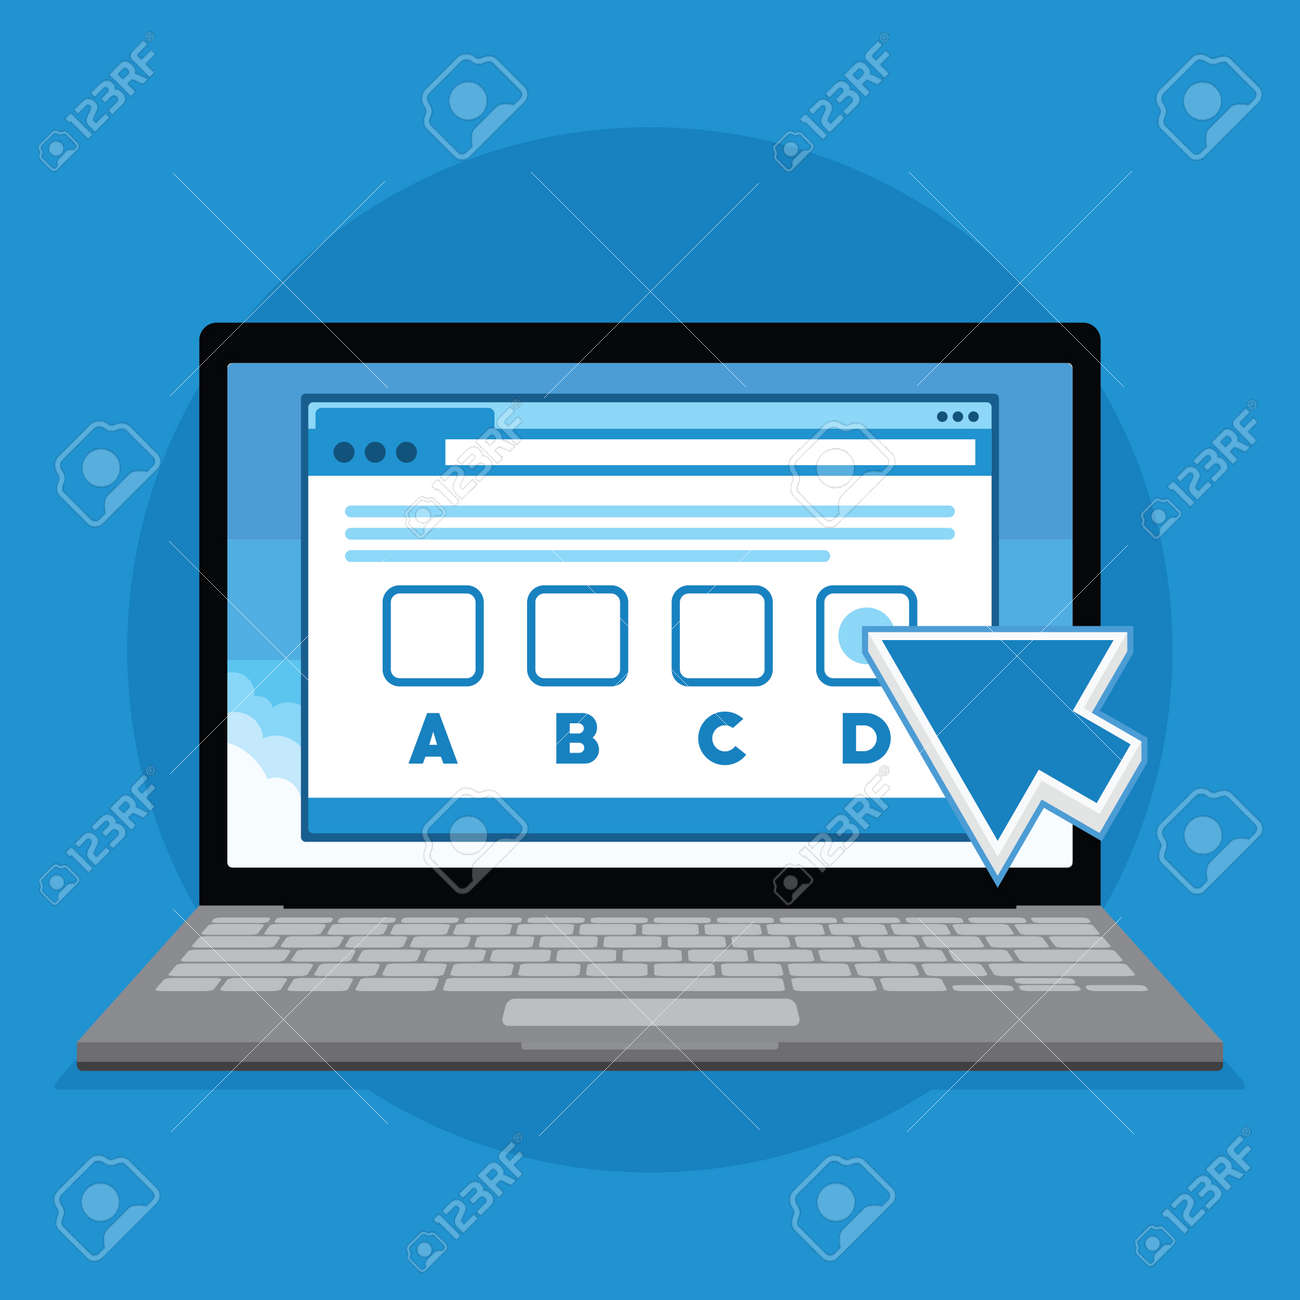 Online Exam Test With Laptop Illustration Royalty Free Cliparts Vectors And Stock Illustration Image 71735652